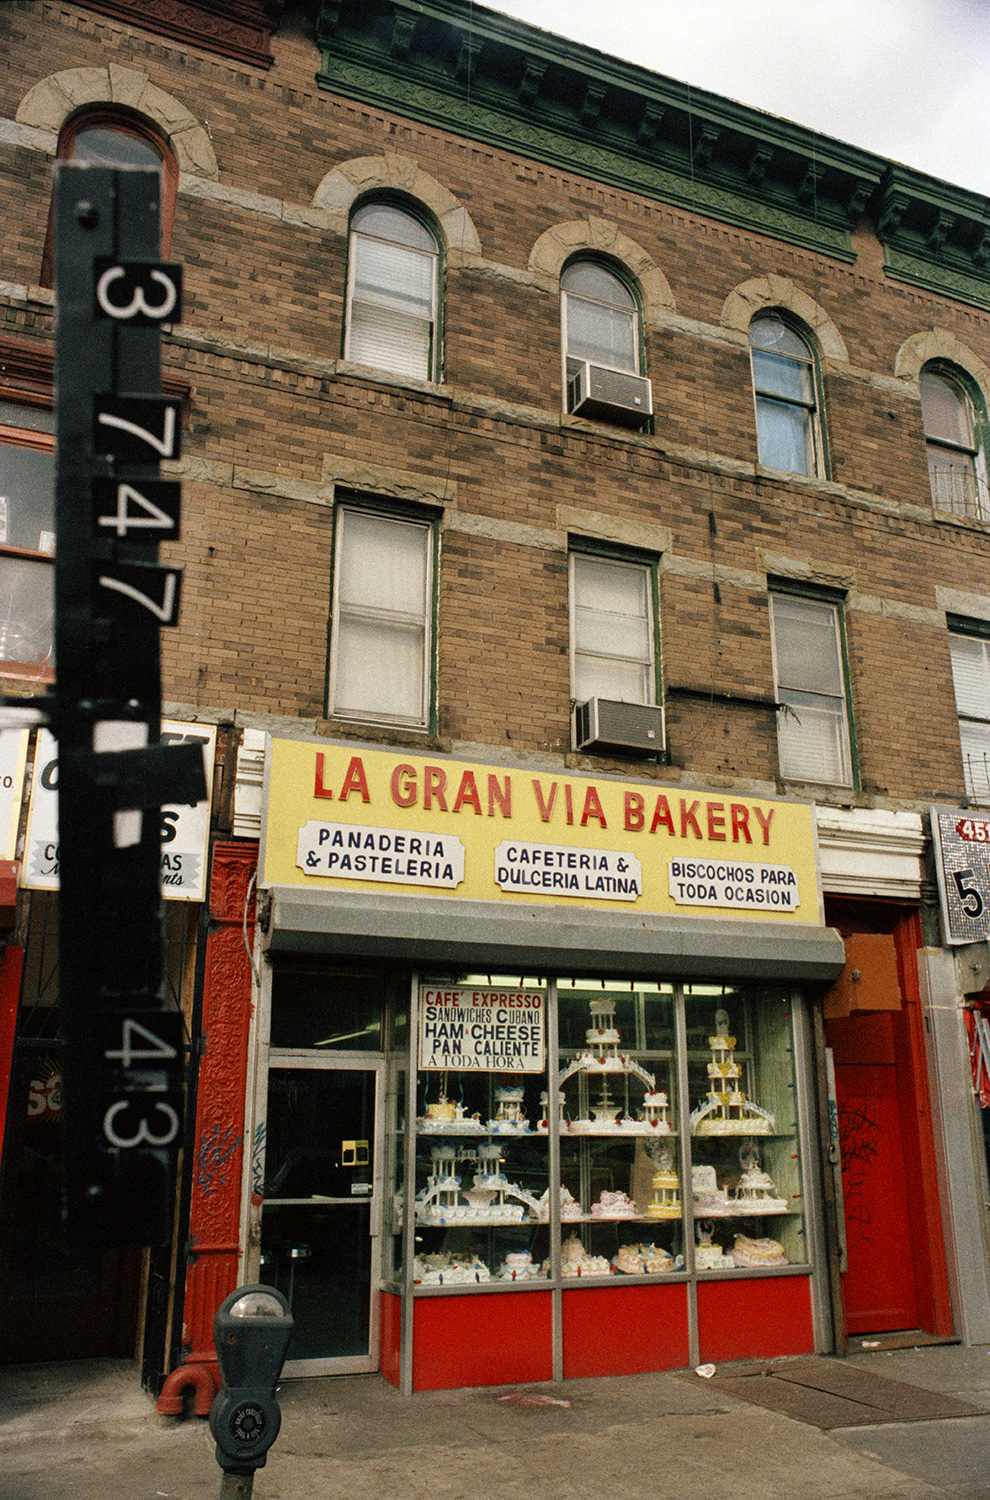 4516 5th Ave between 45th-46th Streets. 1983-1988. NYC Municipal Archives.